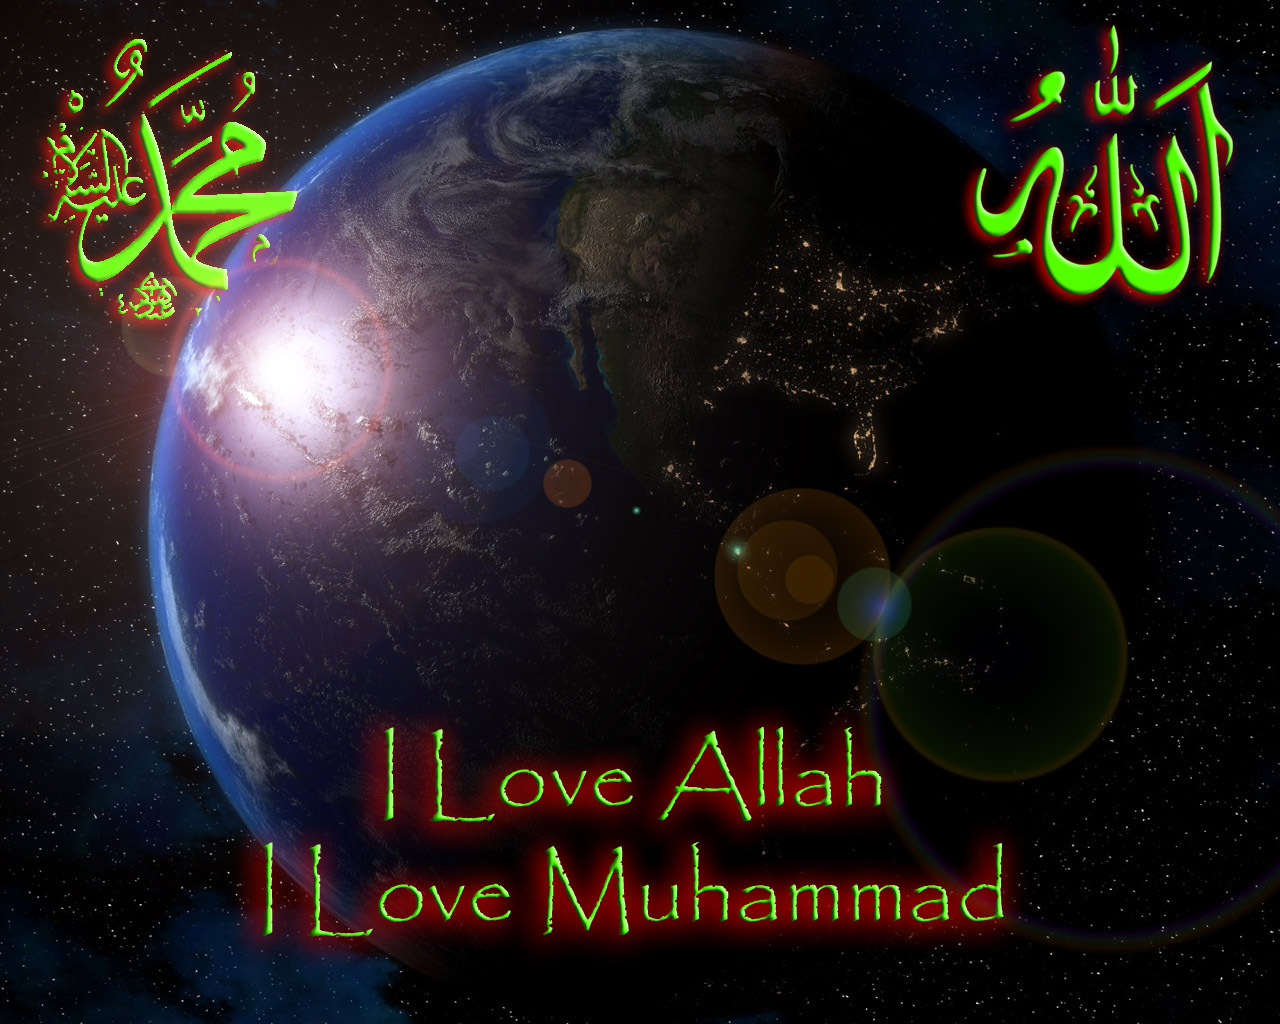 Love Wallpaper Allah : The gallery for --> I Love Allah Muhammad Wallpaper